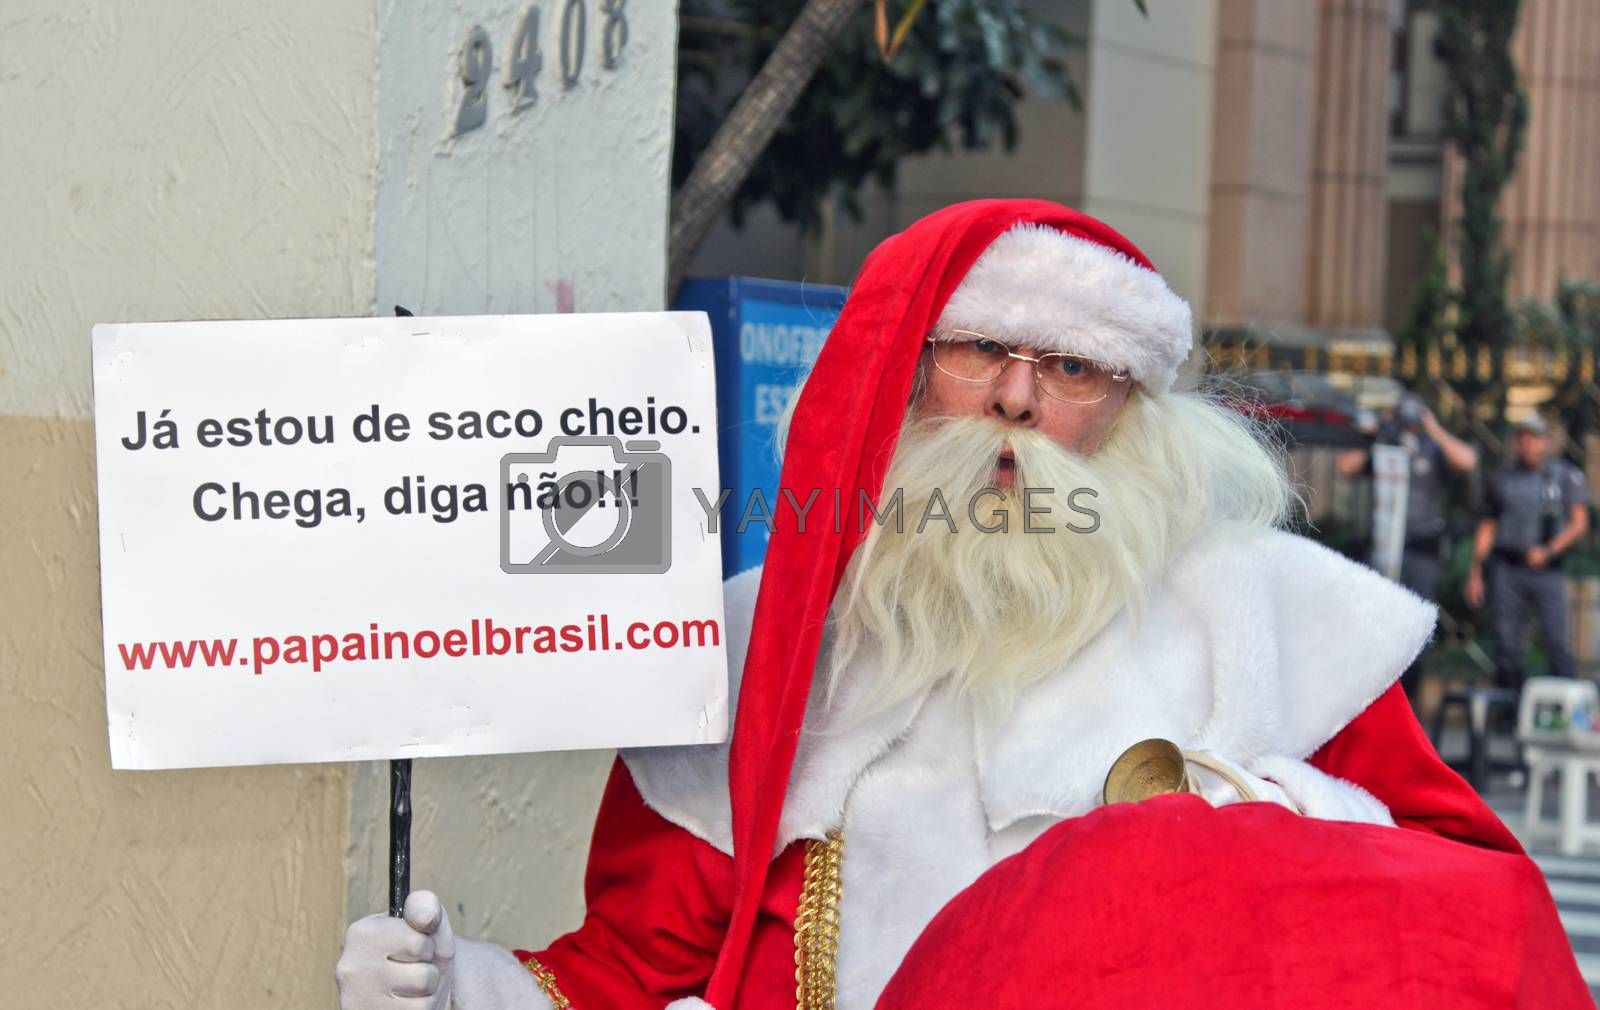 SAO PAULO, BRAZIL August 16, 2015: An unidentified man with the Santa Clau costume in the protest against federal government corruption in Sao Paulo Brazil.